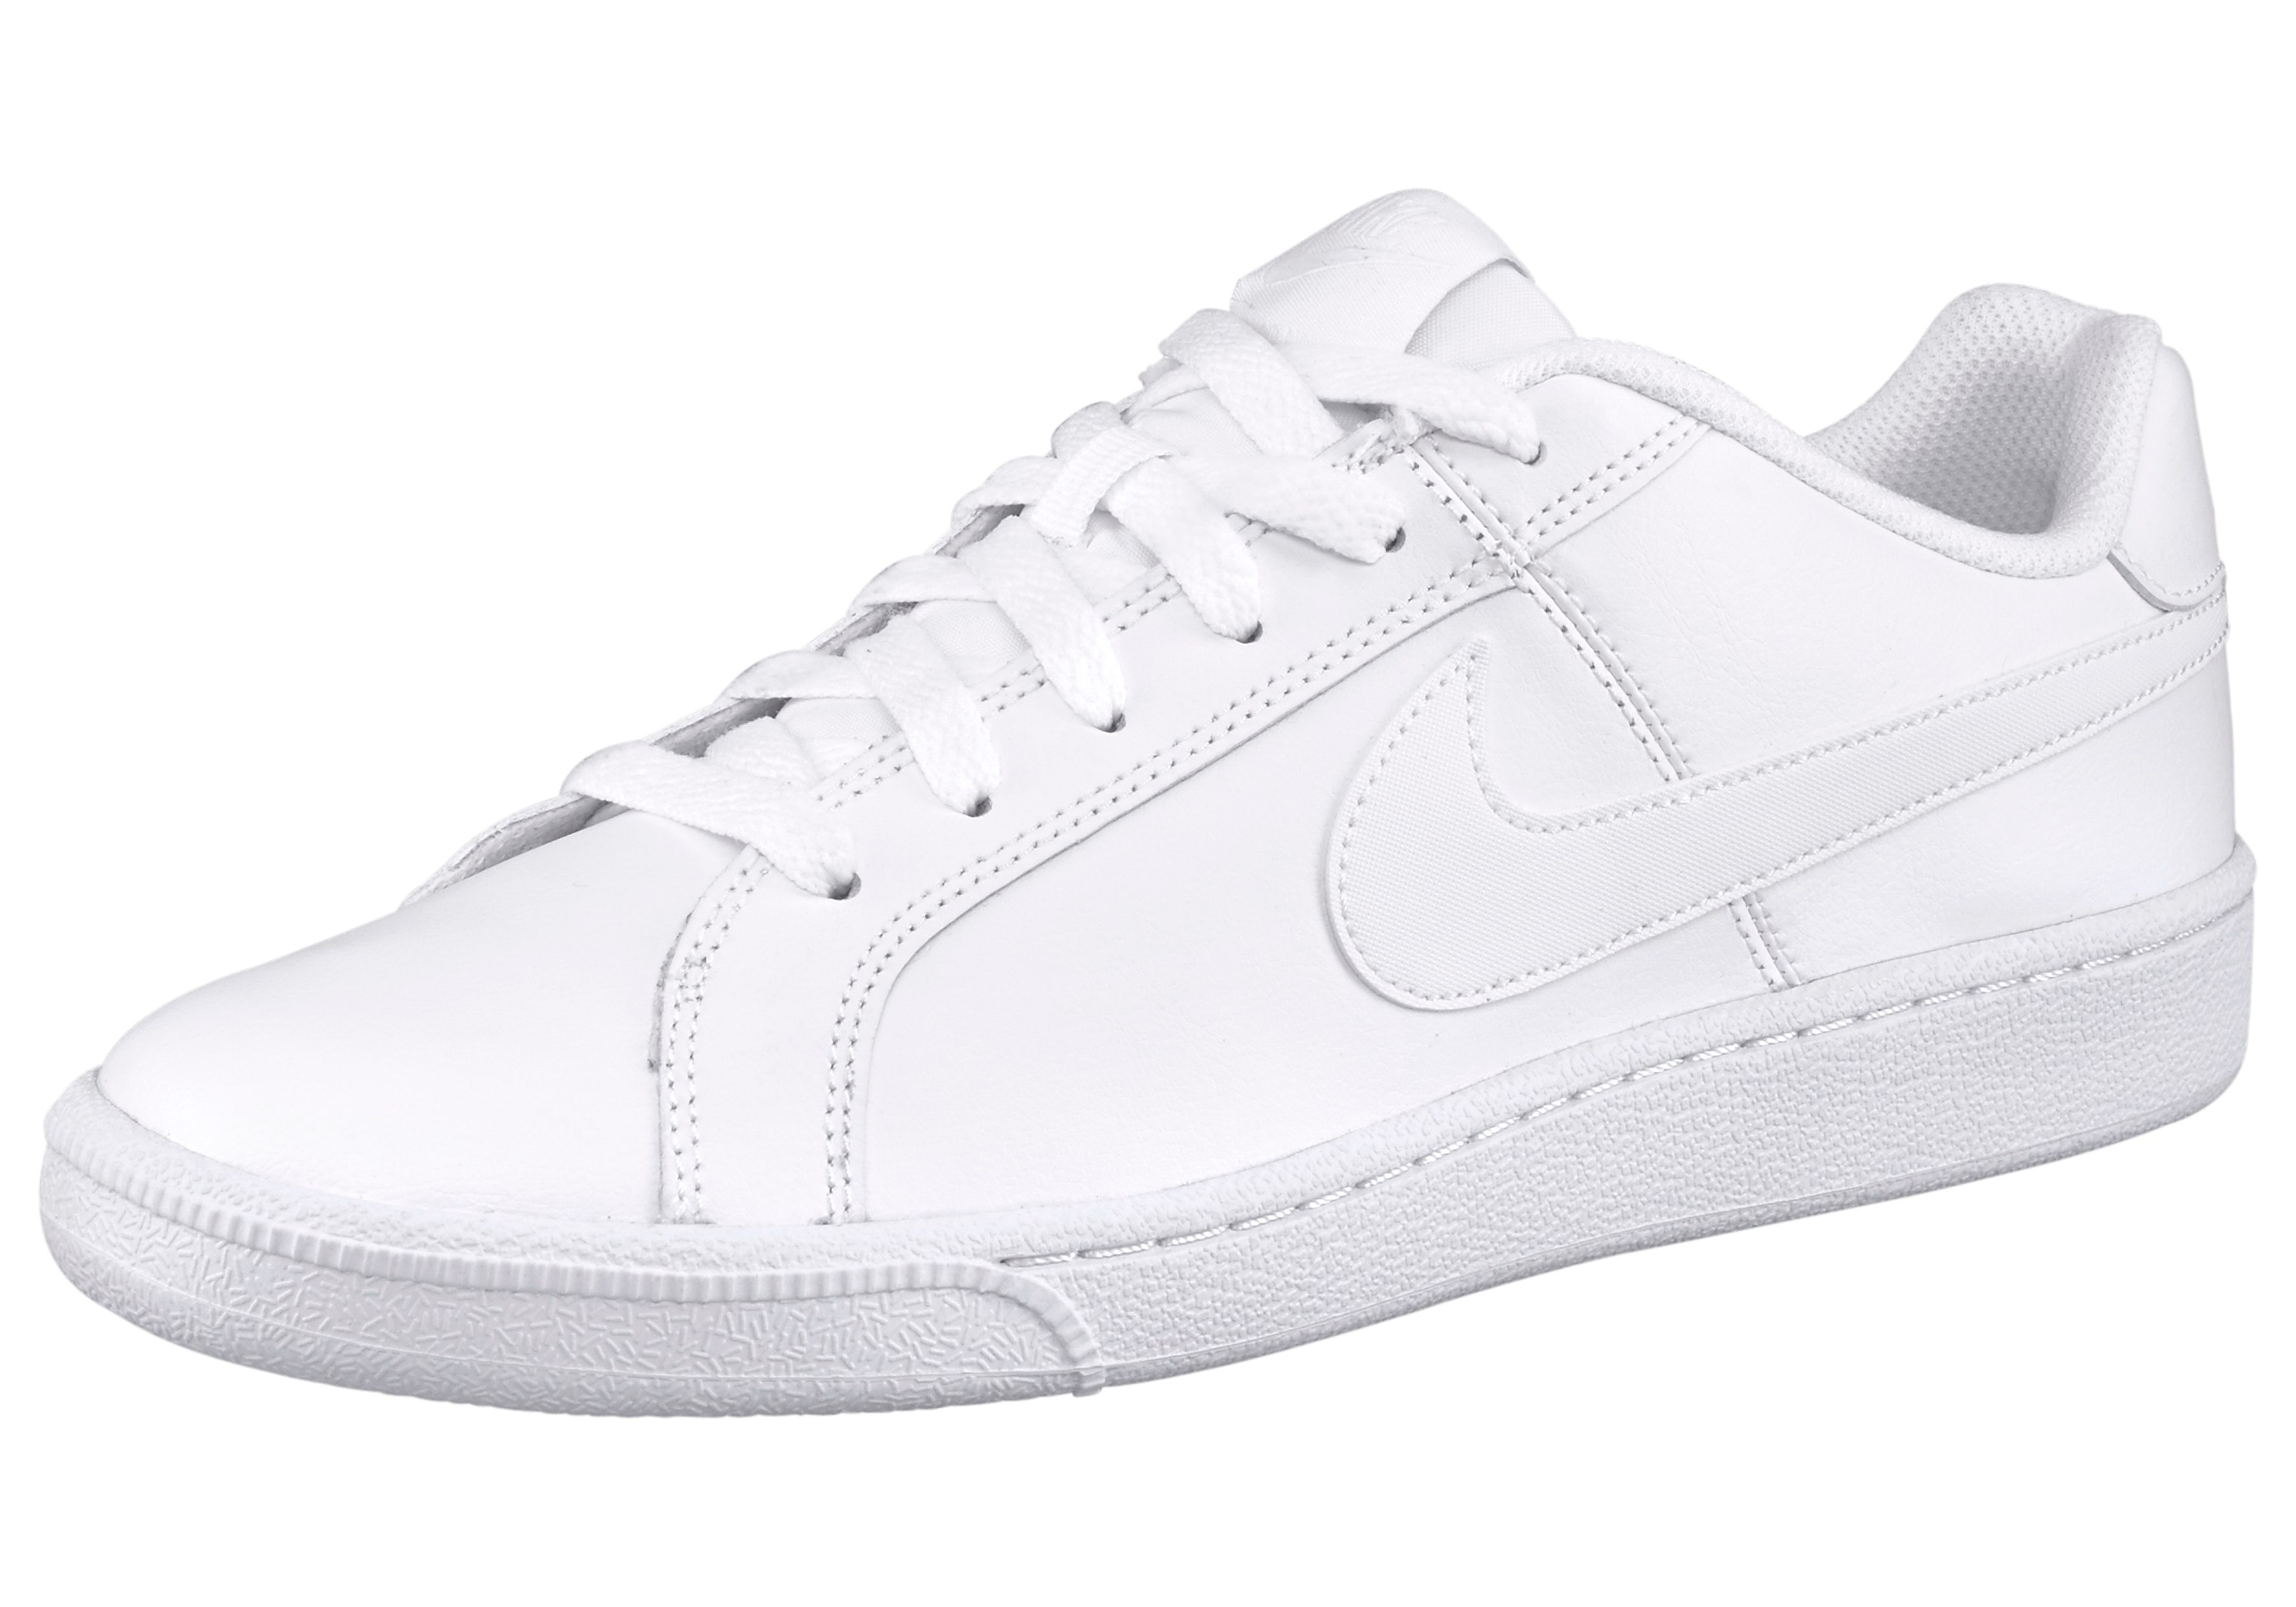 Nike Nike Cour Baskets Taille 41 - Royale - Hommes - Blanc uguBOeSPH